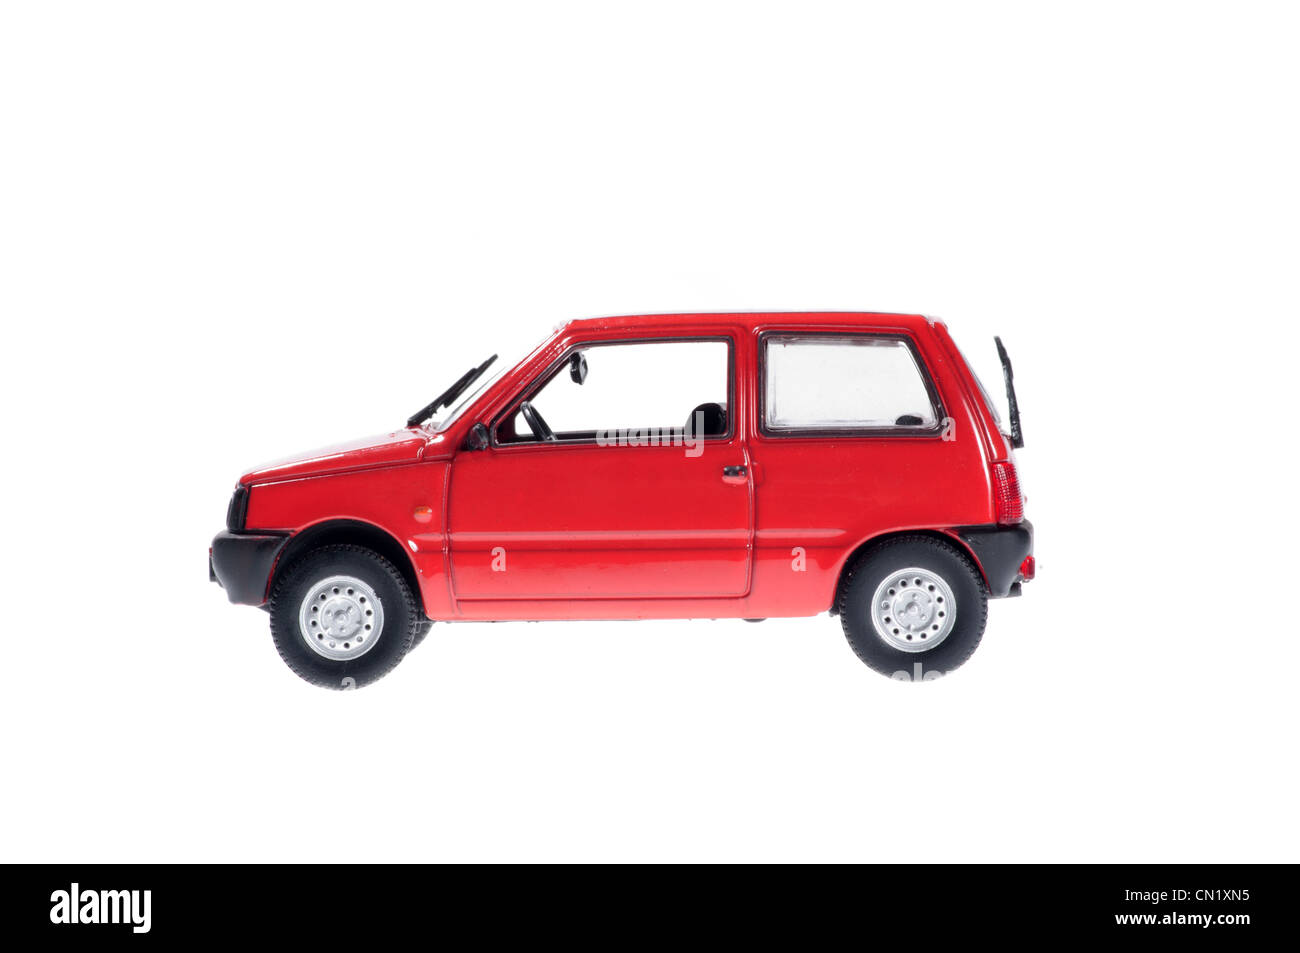 Small red car on white background. - Stock Image